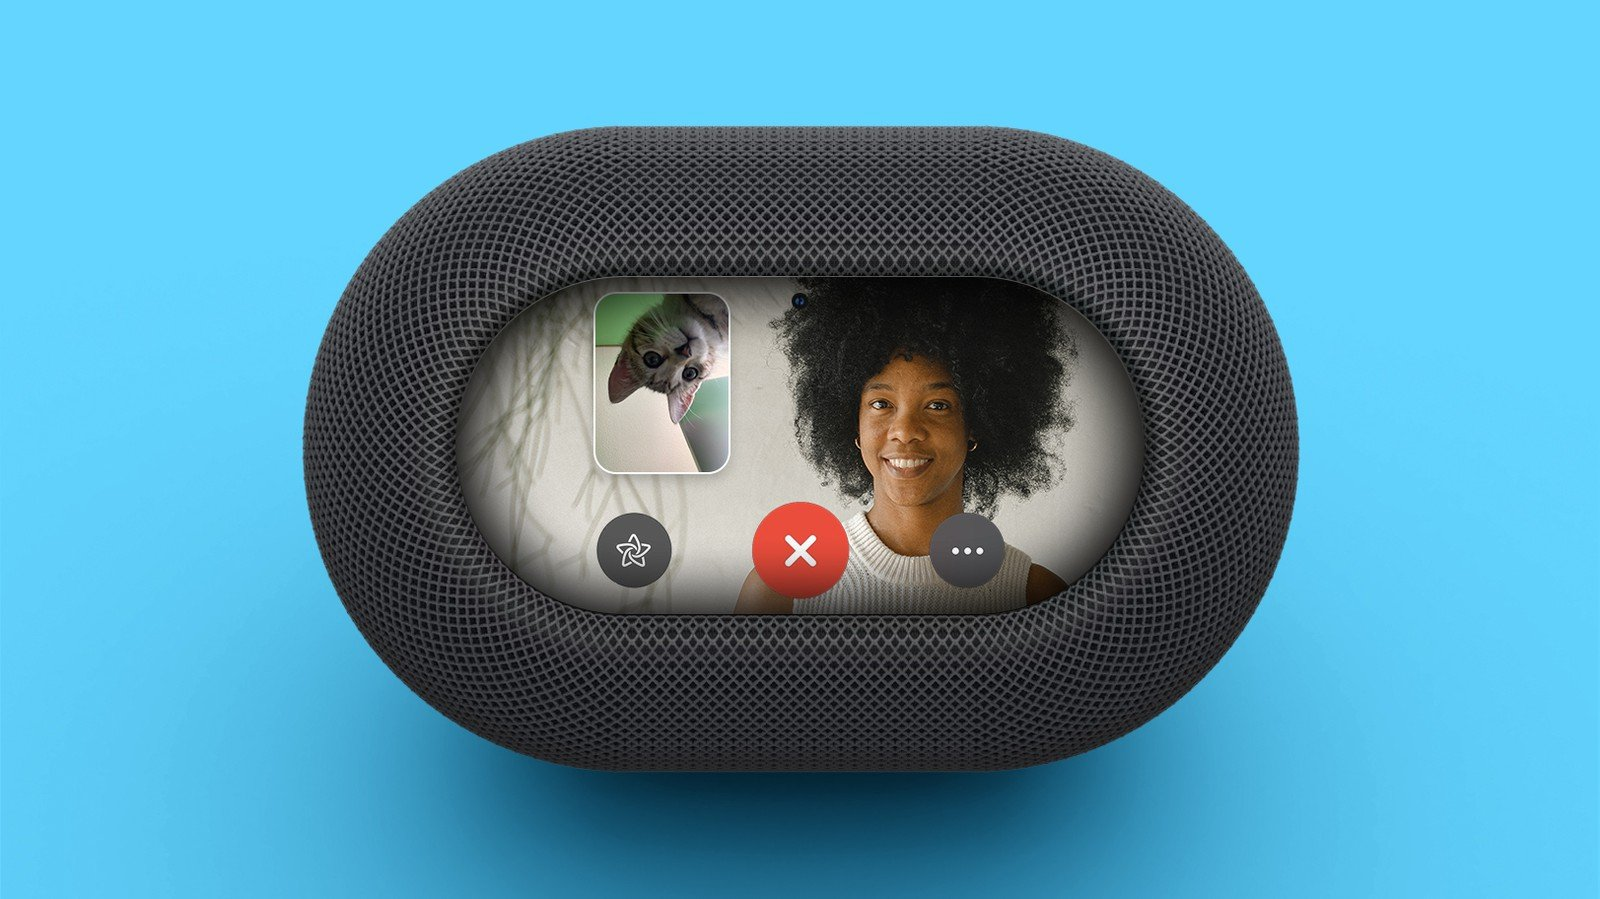 5403480_cover-tinhte-homepod-facetime-feature-3-2.jpg